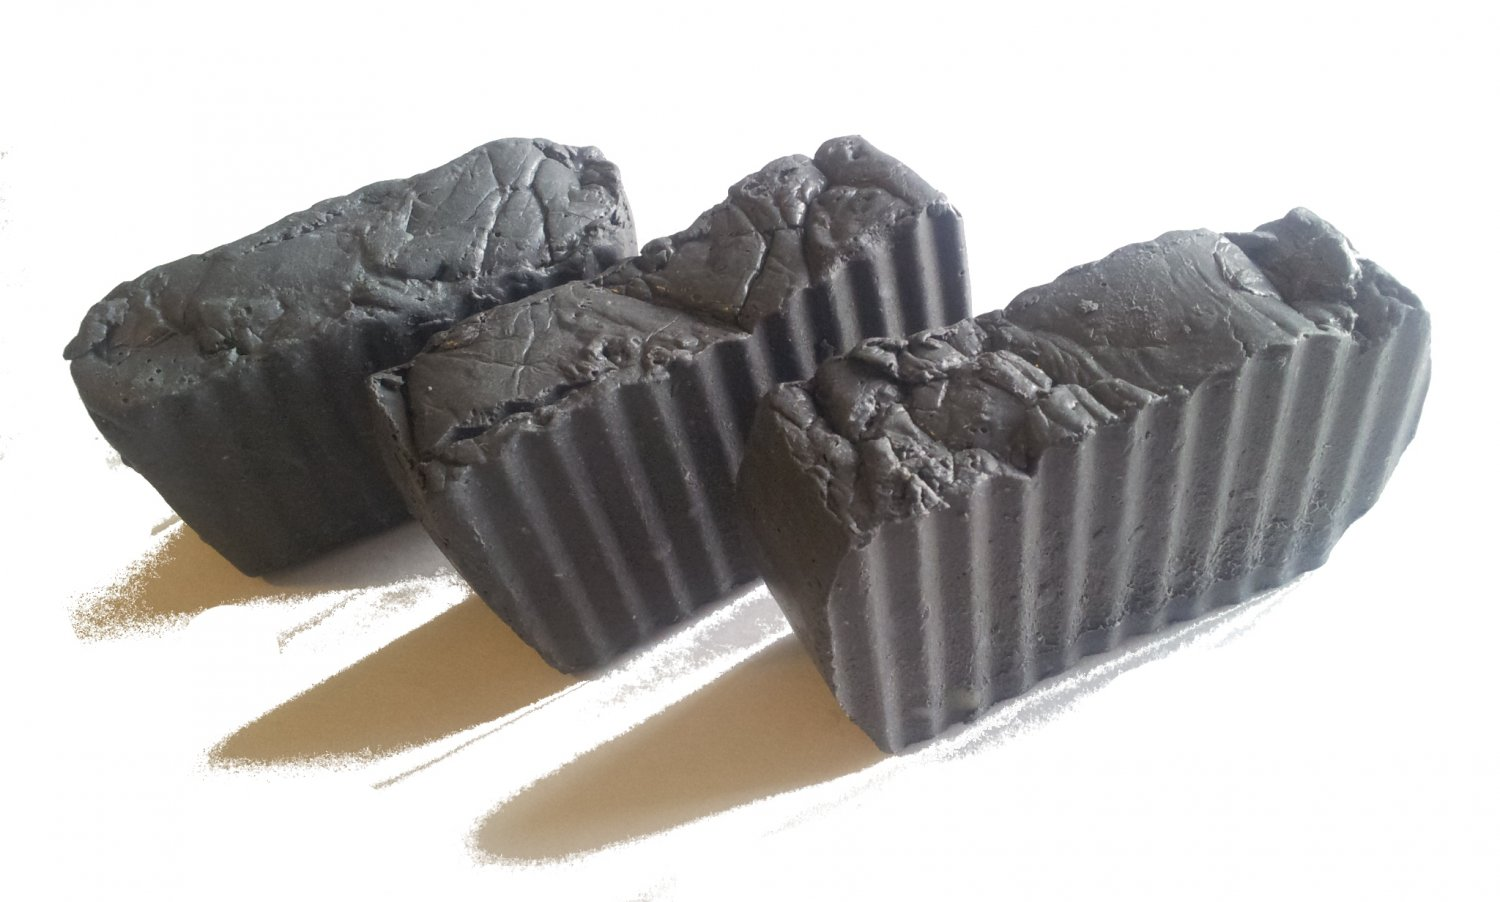 Handmade Soap- Homemade Activated Bamboo Charcoal Pore Detox Bath Soap